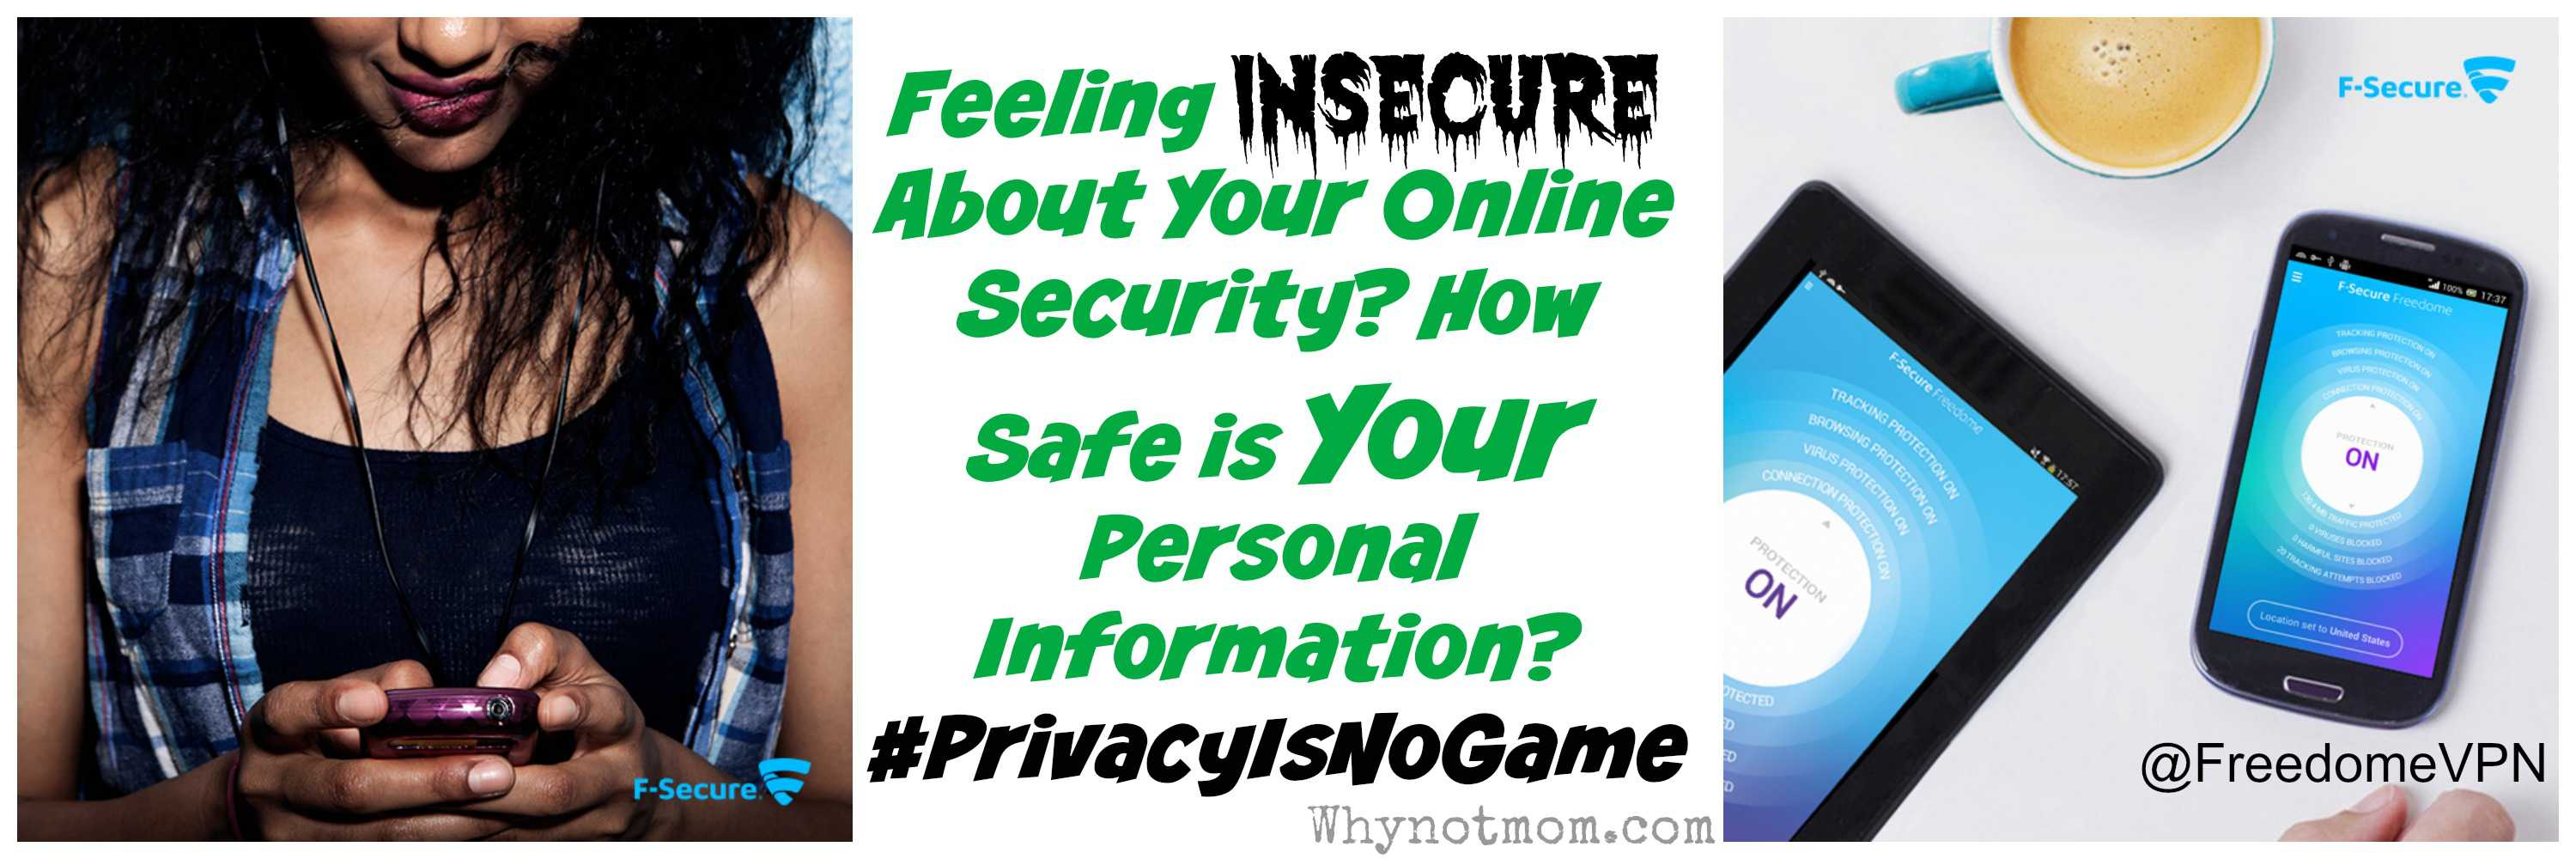 Do you feel unsure of your online security? Read this! #PrivacyIsNoGame https://whynotmom.combit.ly/1DUyeXZ via @whynotmomdotcom